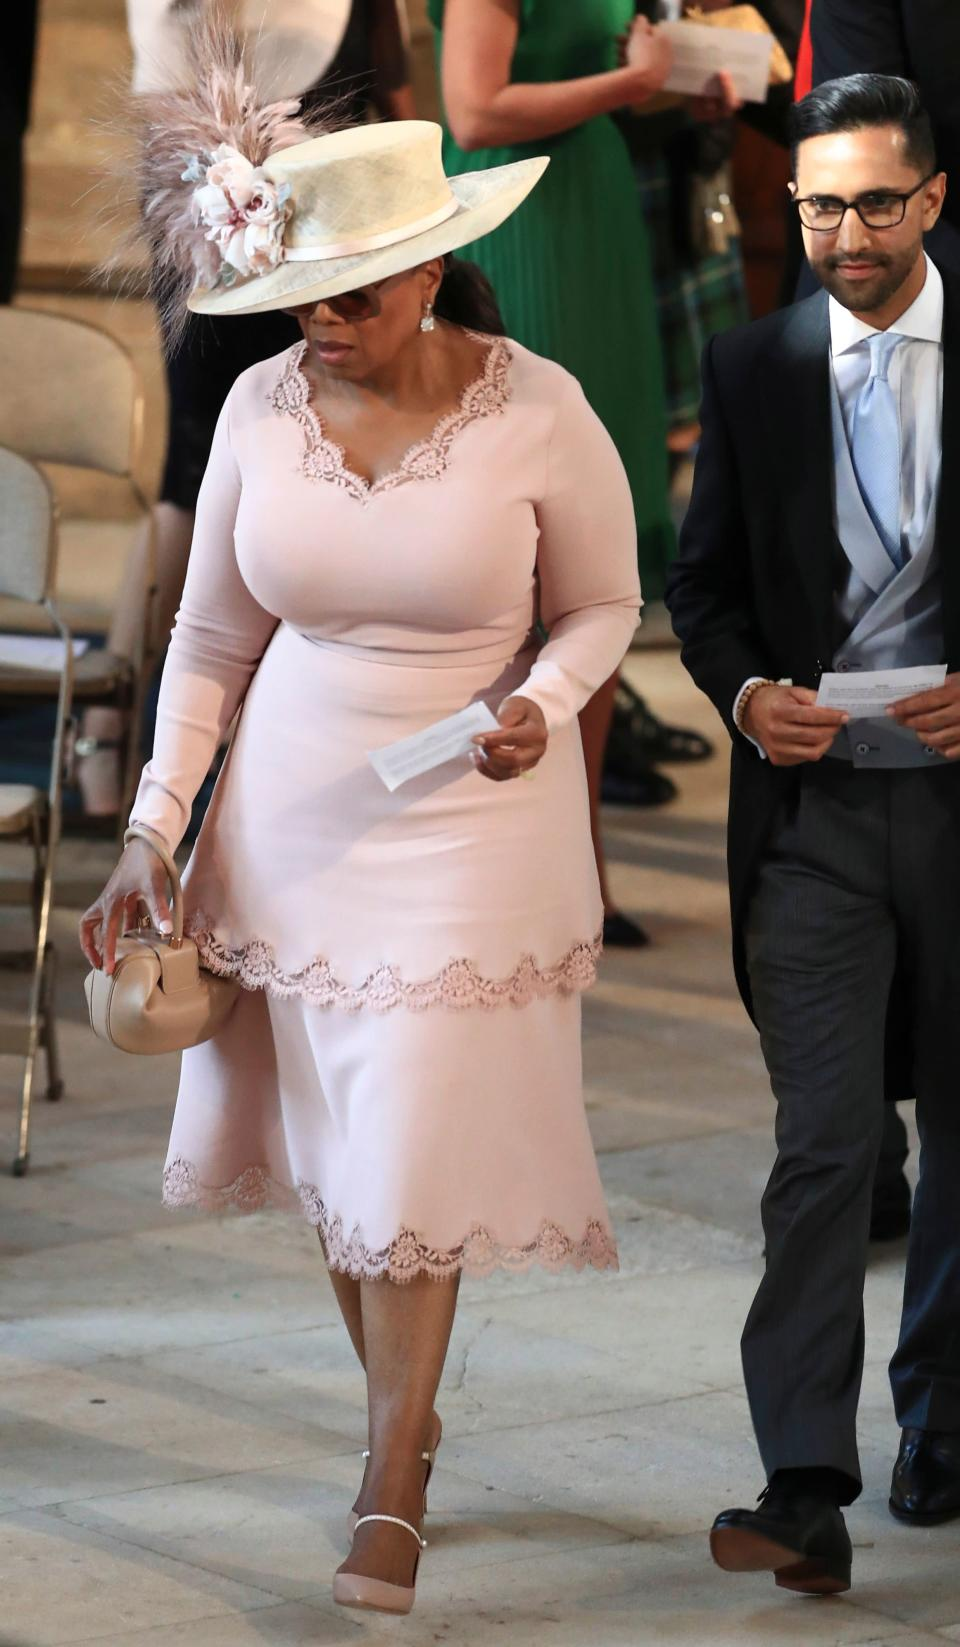 """Winfrey and her """"mystery man."""" Image via Getty Images."""